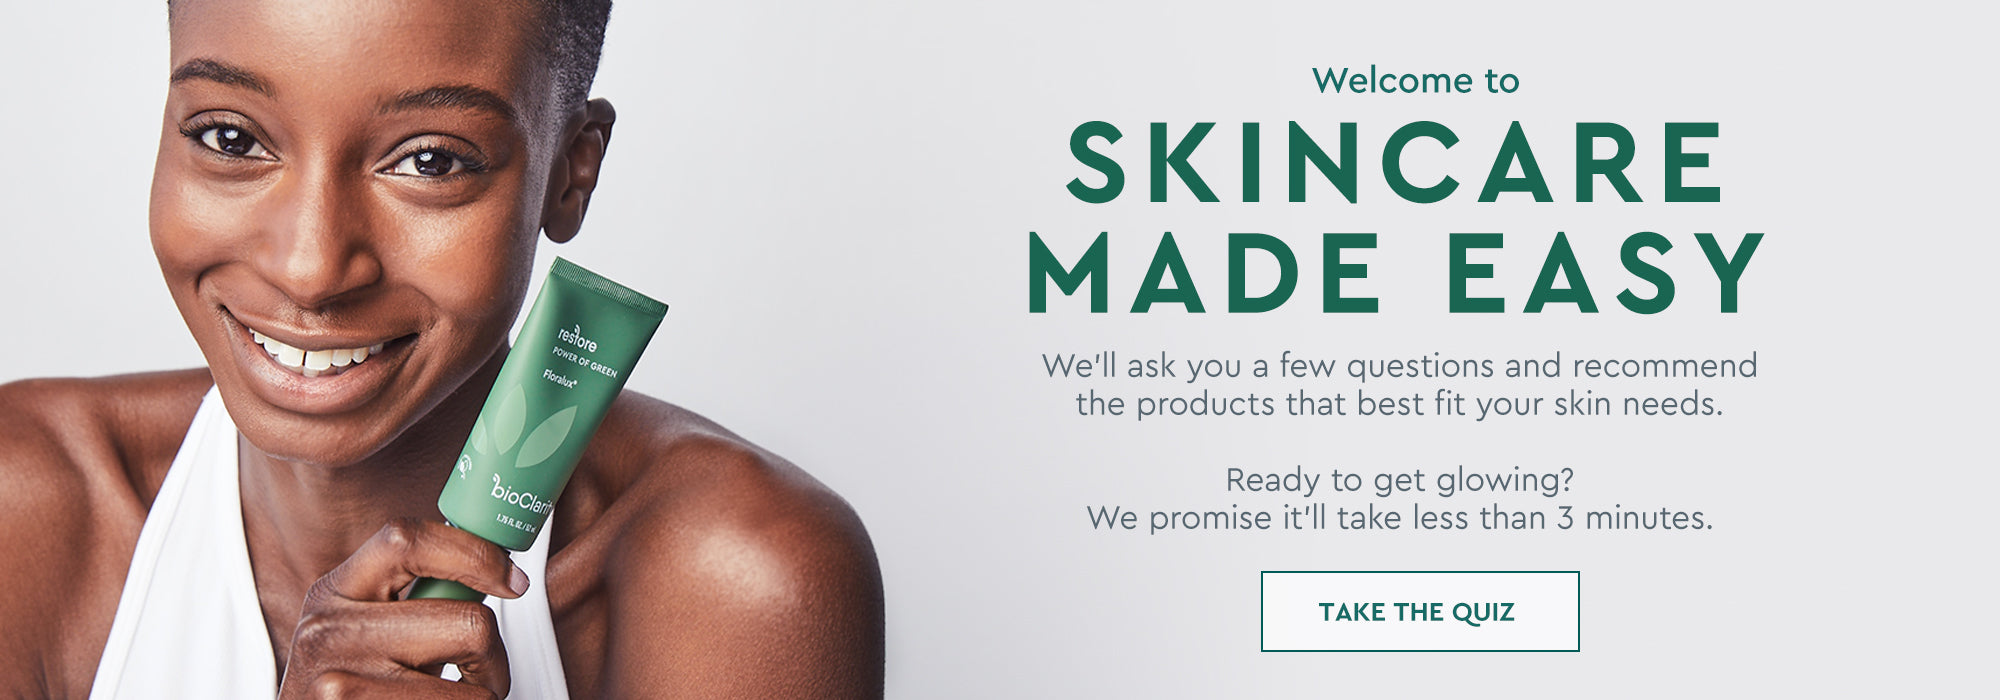 Welcome to Skincare Made Easy - Follow link to start the skin quiz